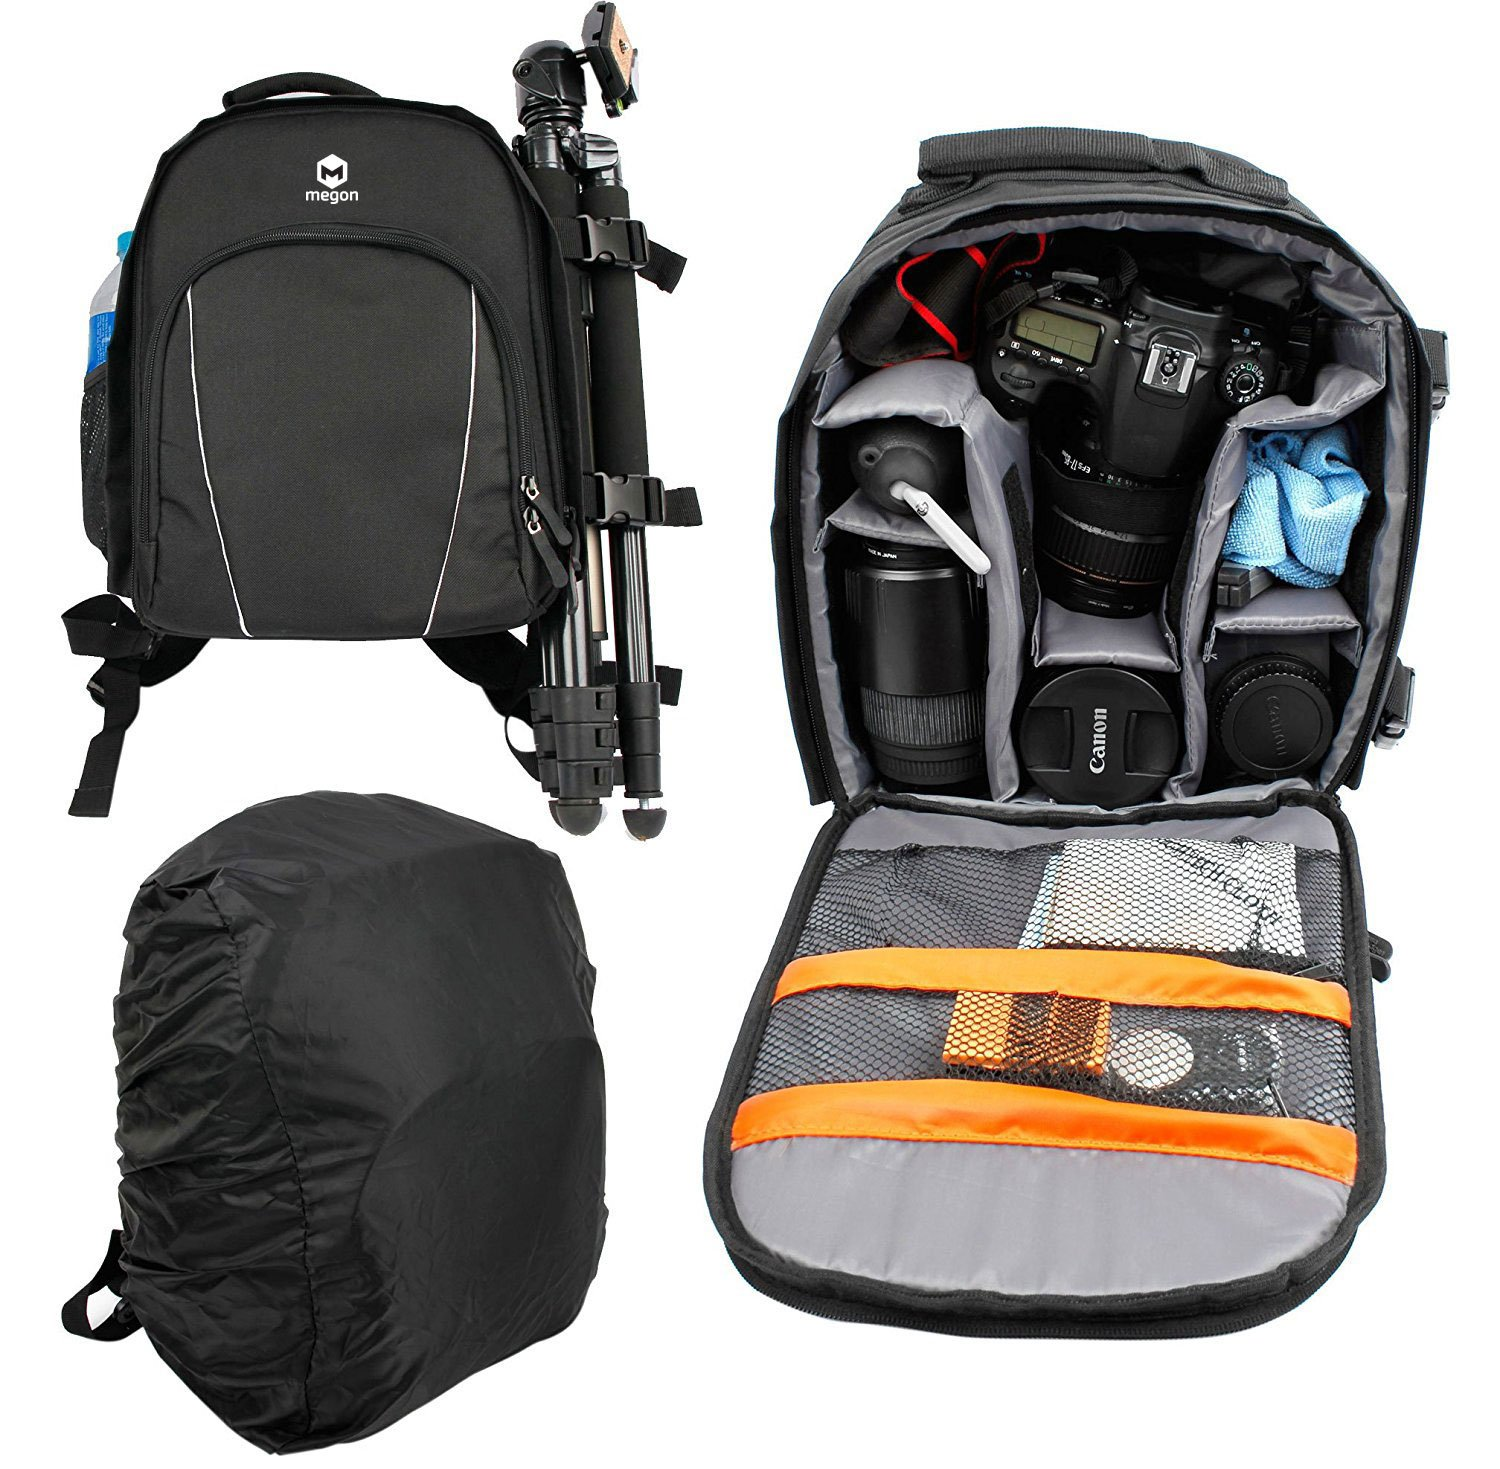 Professional Multi Functional Waterproof Camcorder Combination Bag Anti-shock SLR / DSLR Camera Storage Bag, Backpack for Pentax K-S2 & K100D & K200D & K3 Porum